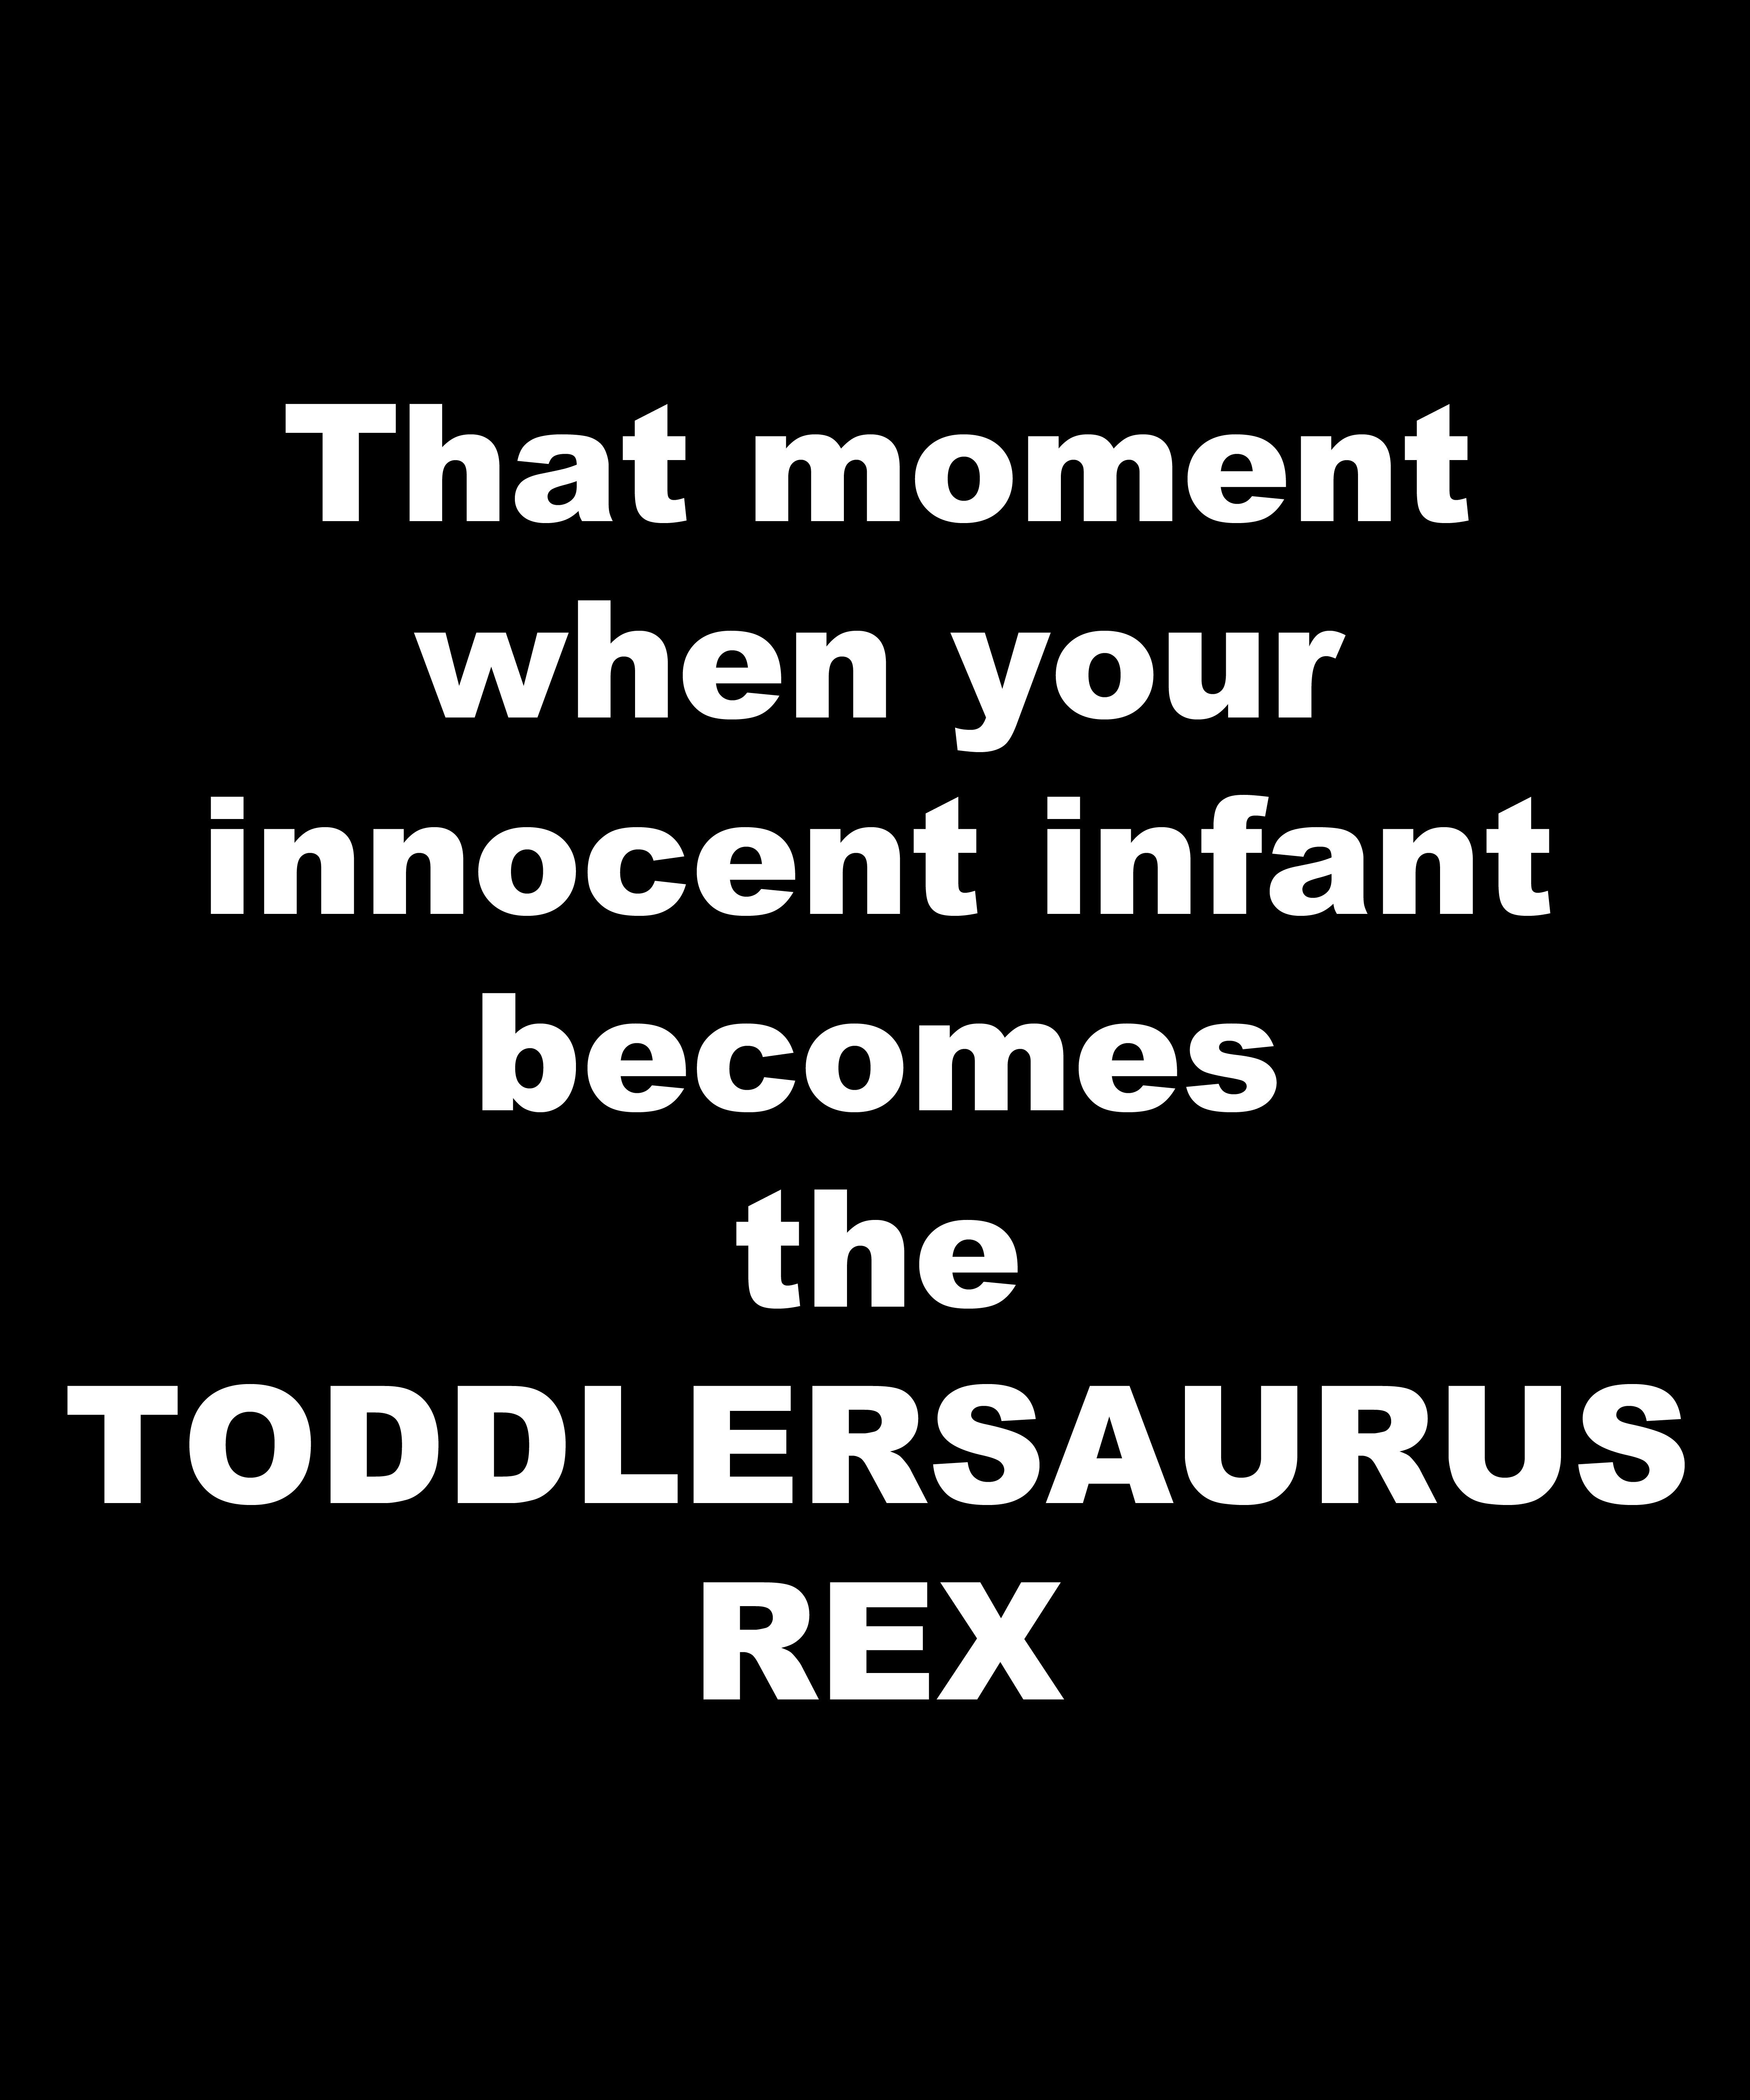 Funny Joke About Babies And Toddlers Meme Quote Saying Funny Mom Quotes Friday Quotes Funny Funny Mom Memes